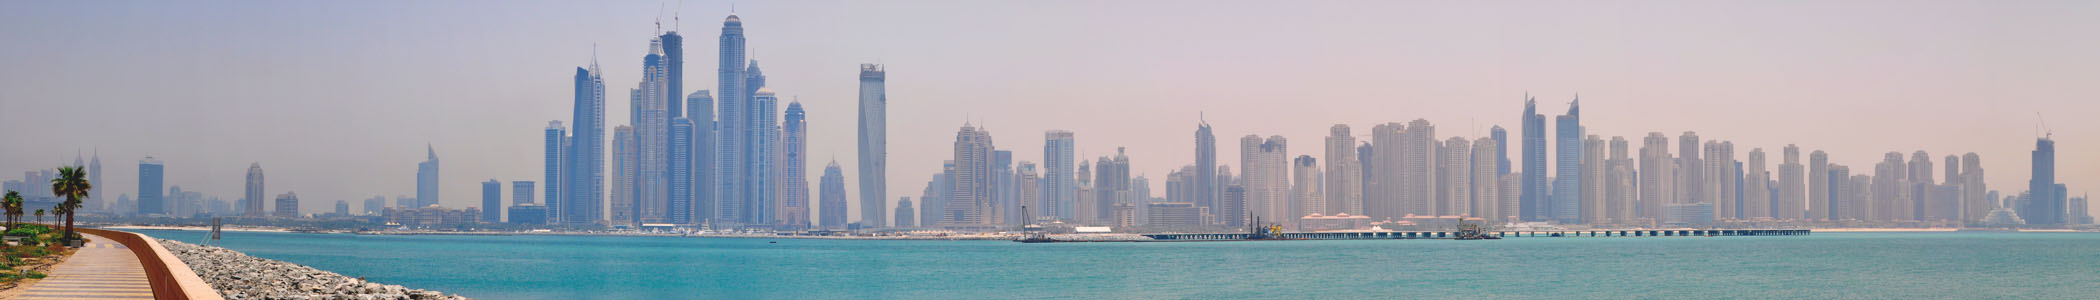 Dubai/Jebel Ali – Travel guide at Wikivoyage